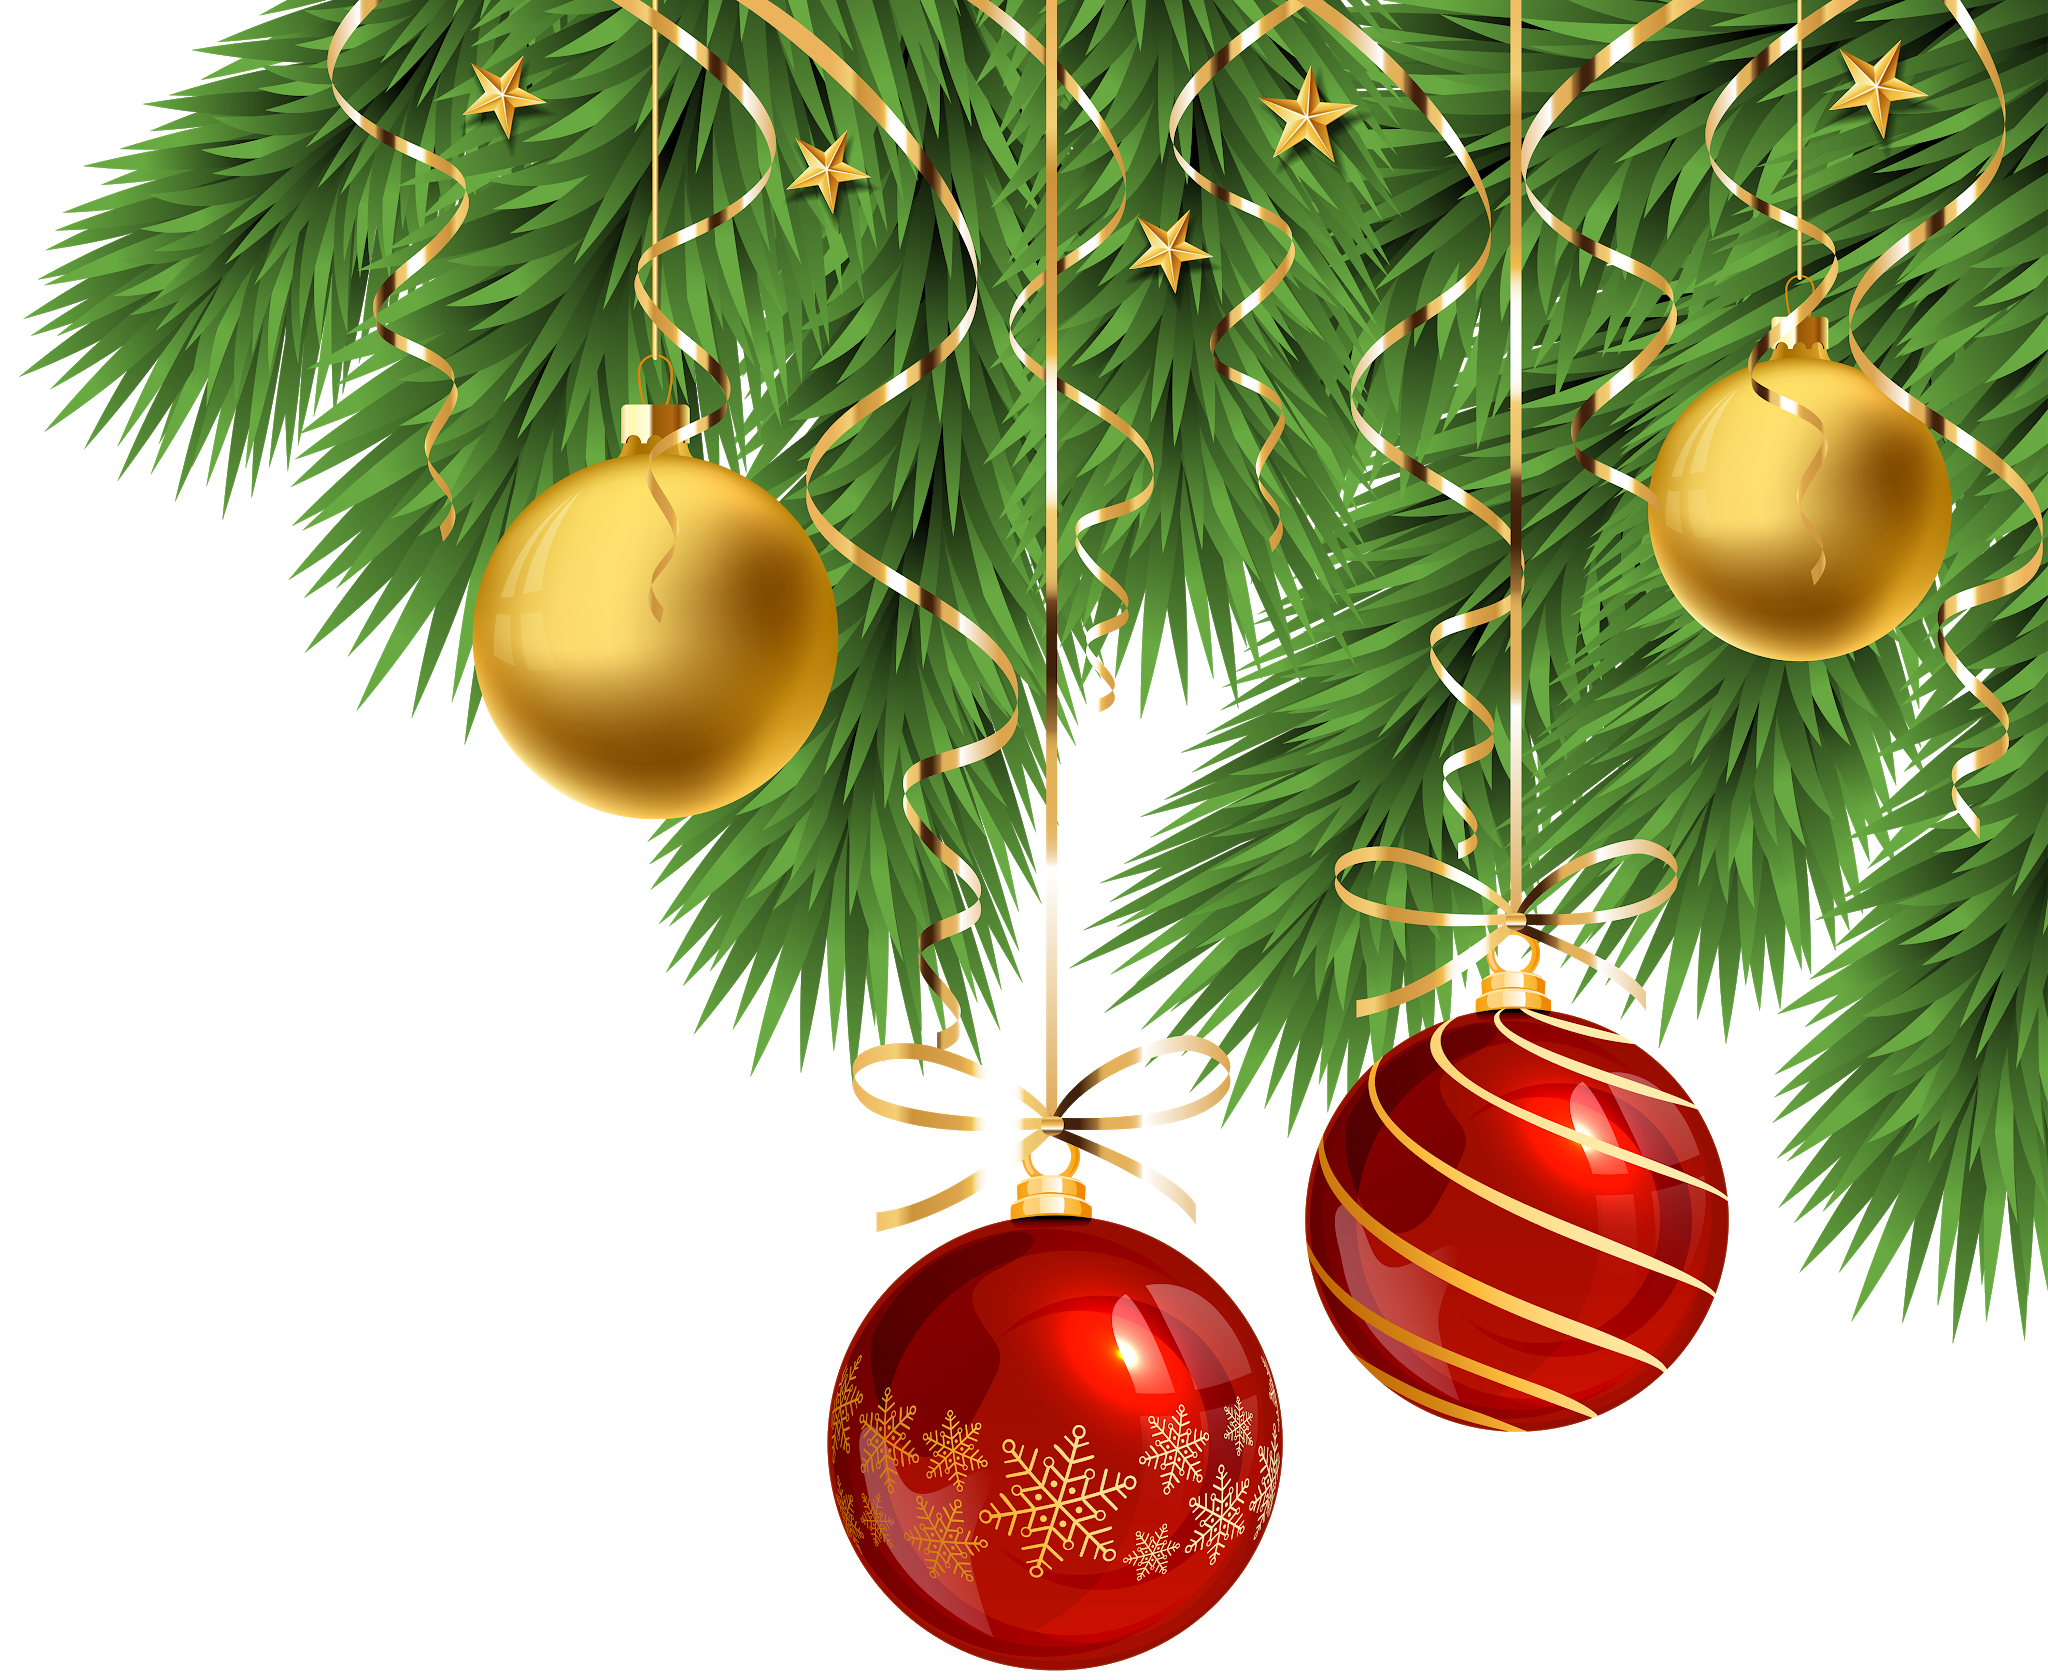 Png Christmas Decorations.Pin By Pngsector On Christmas Png Christmas Transparent